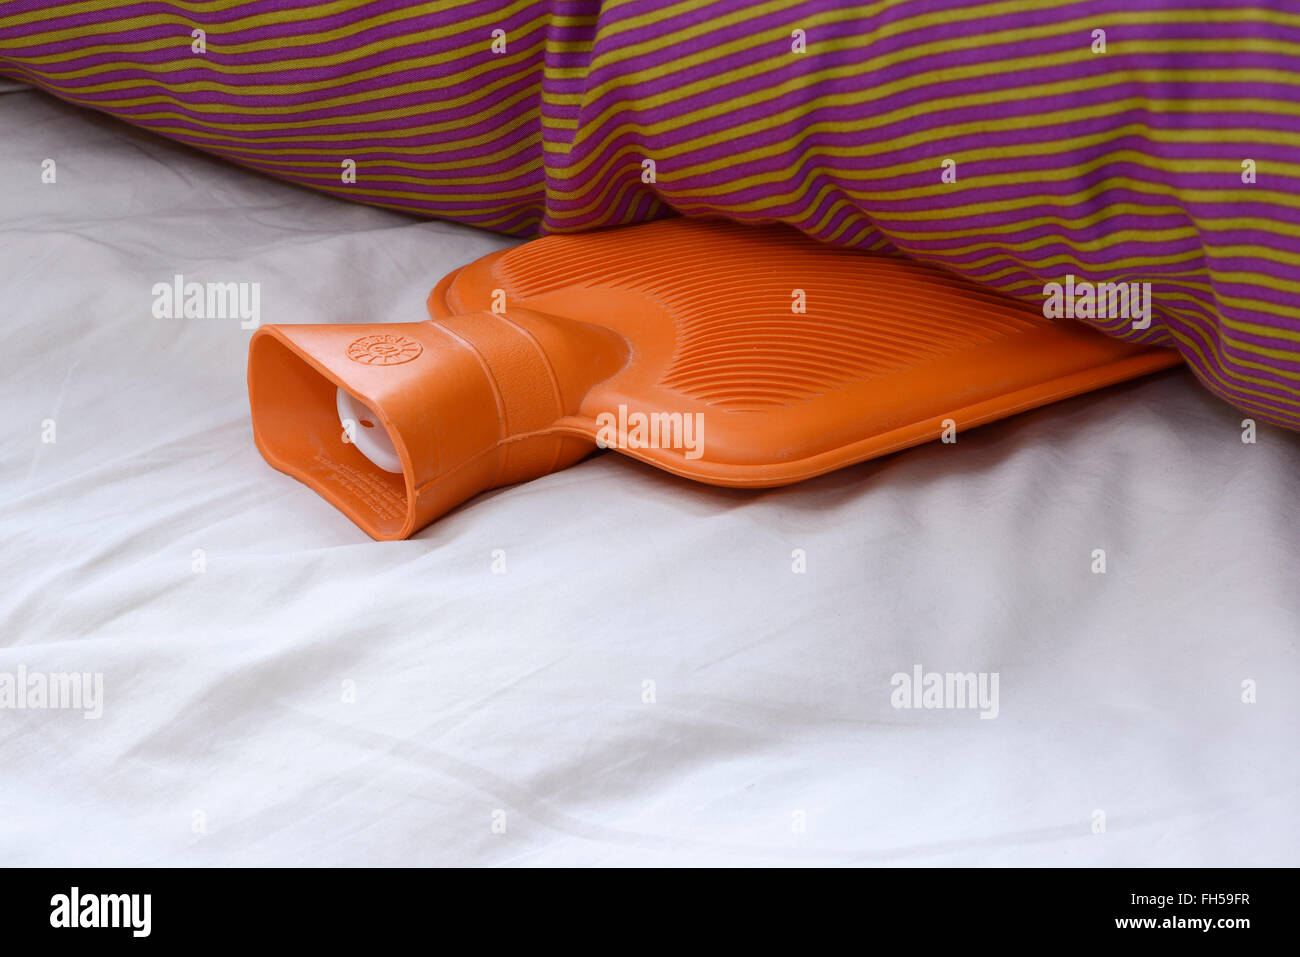 An orange rubber hot water bottle lying in a bed - Stock Image